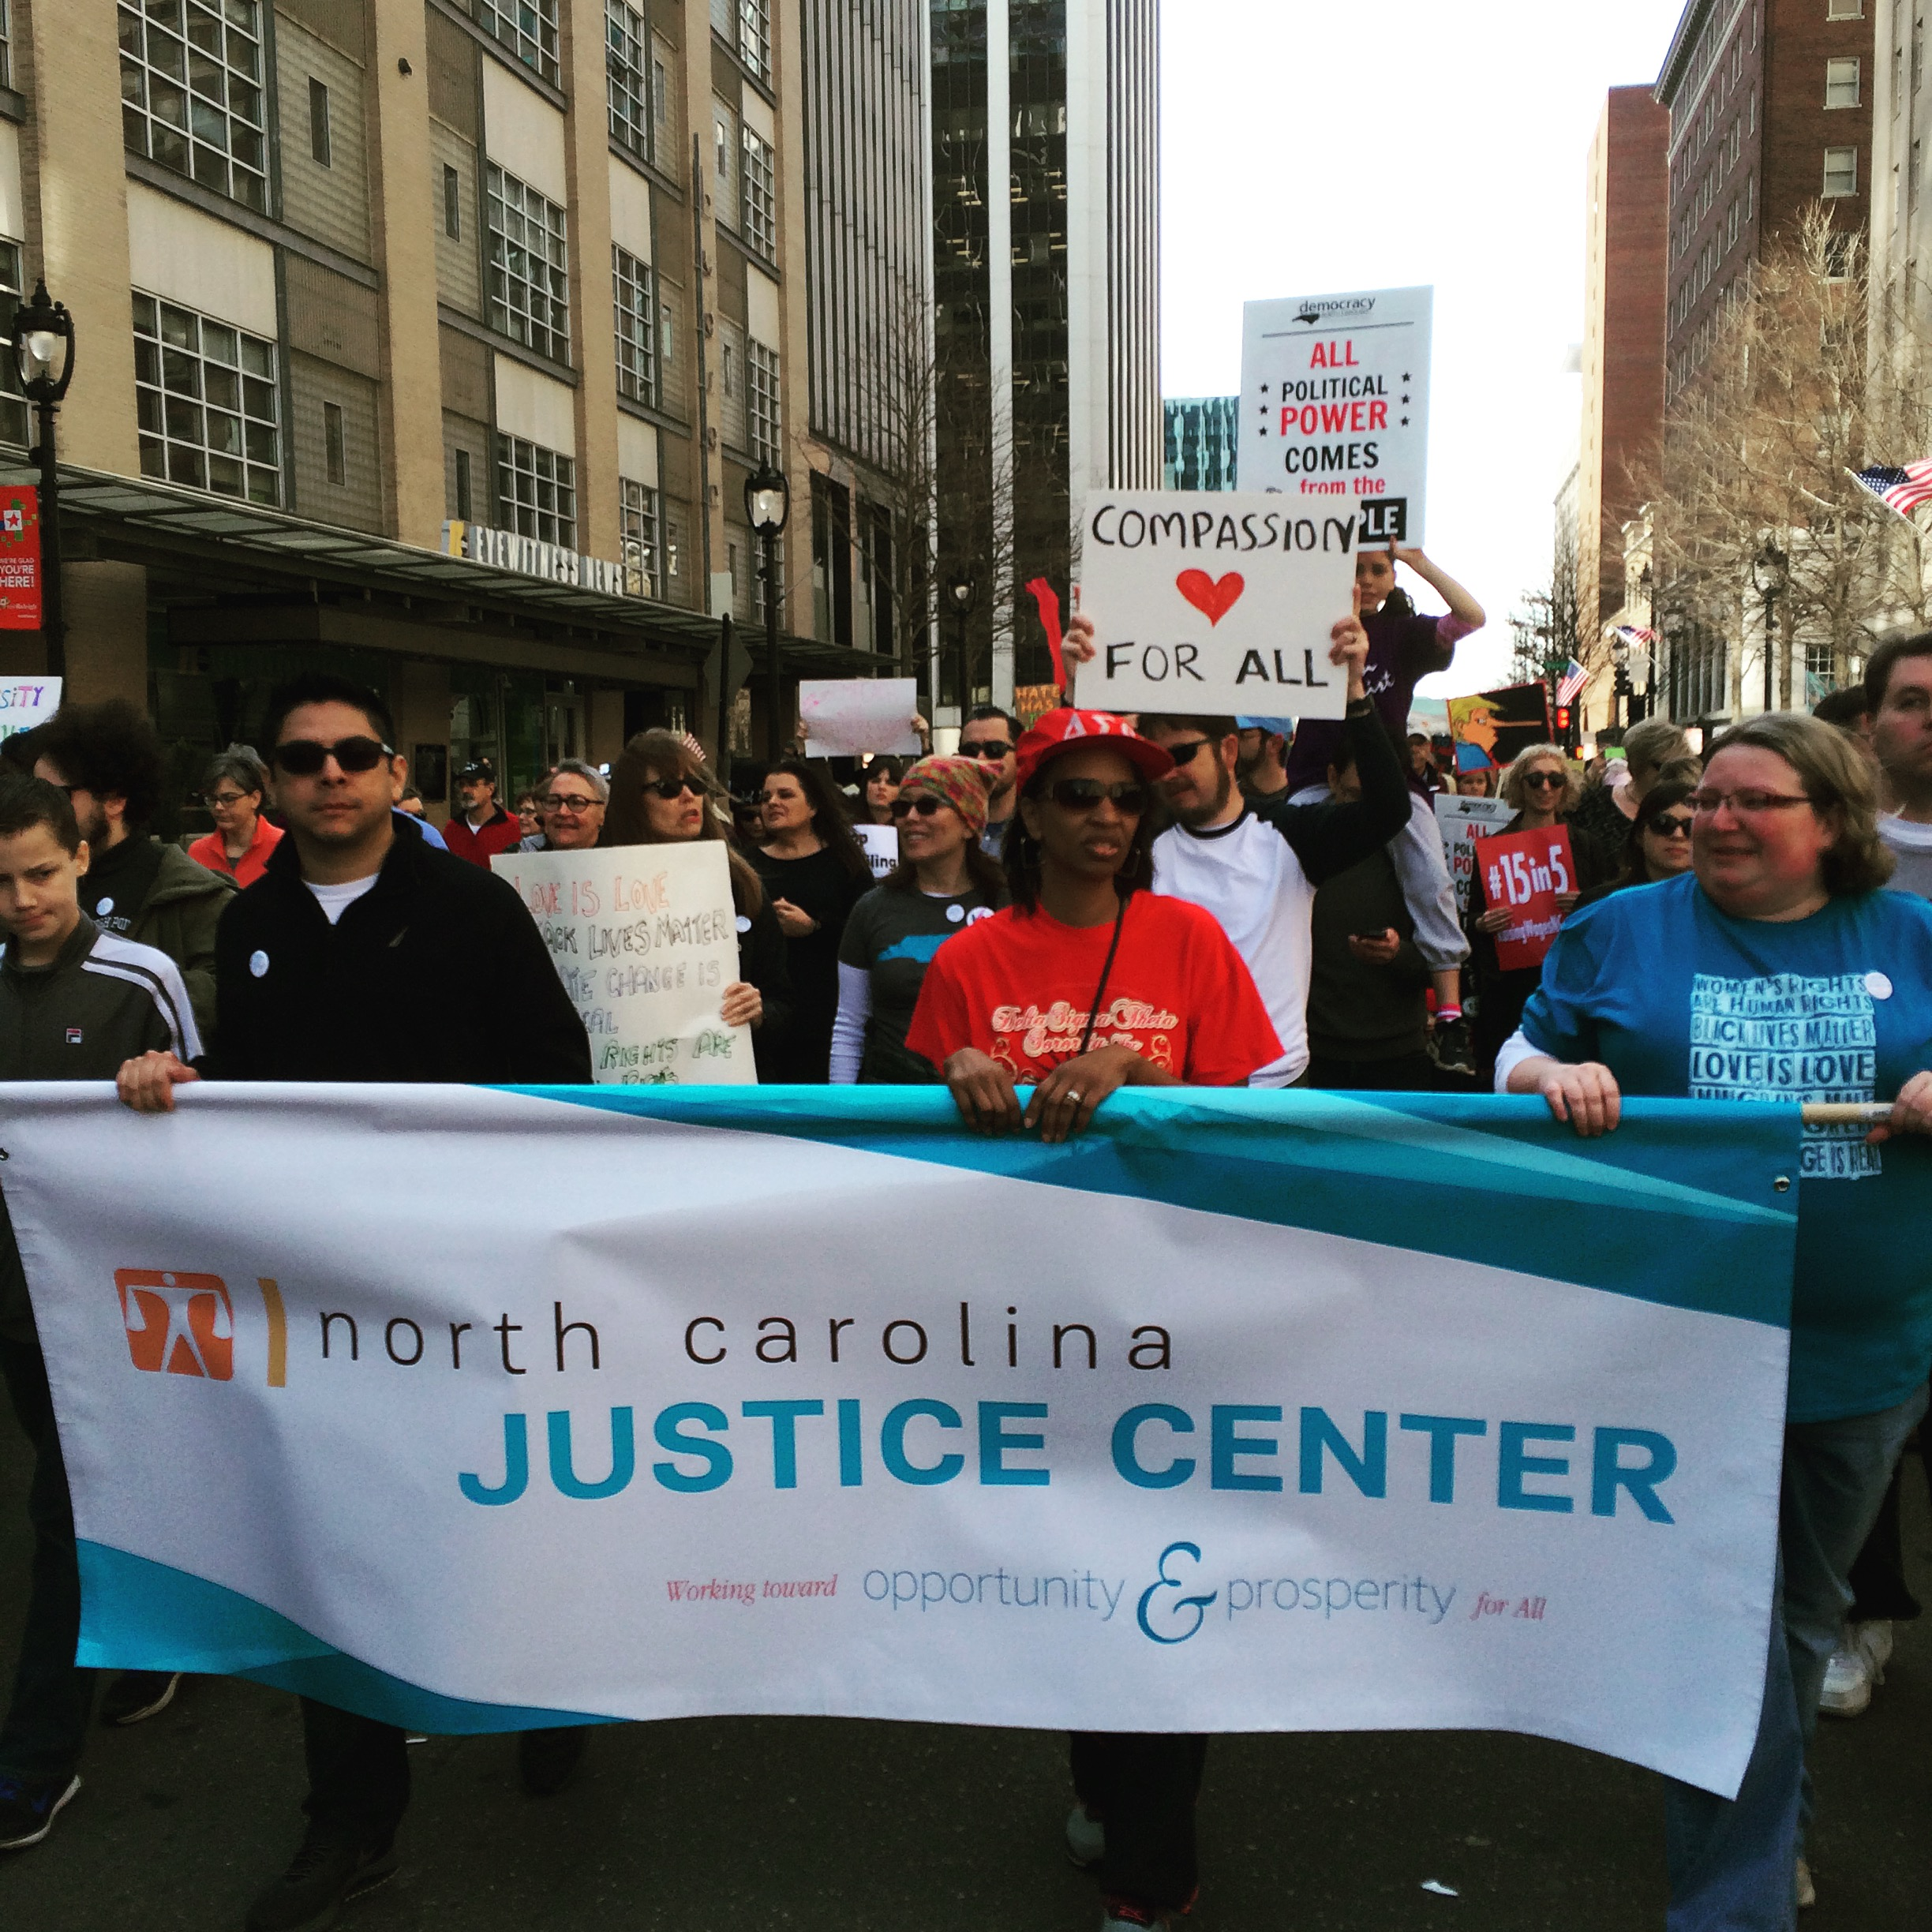 North Carolina Justice Center – Opportunity and prosperity